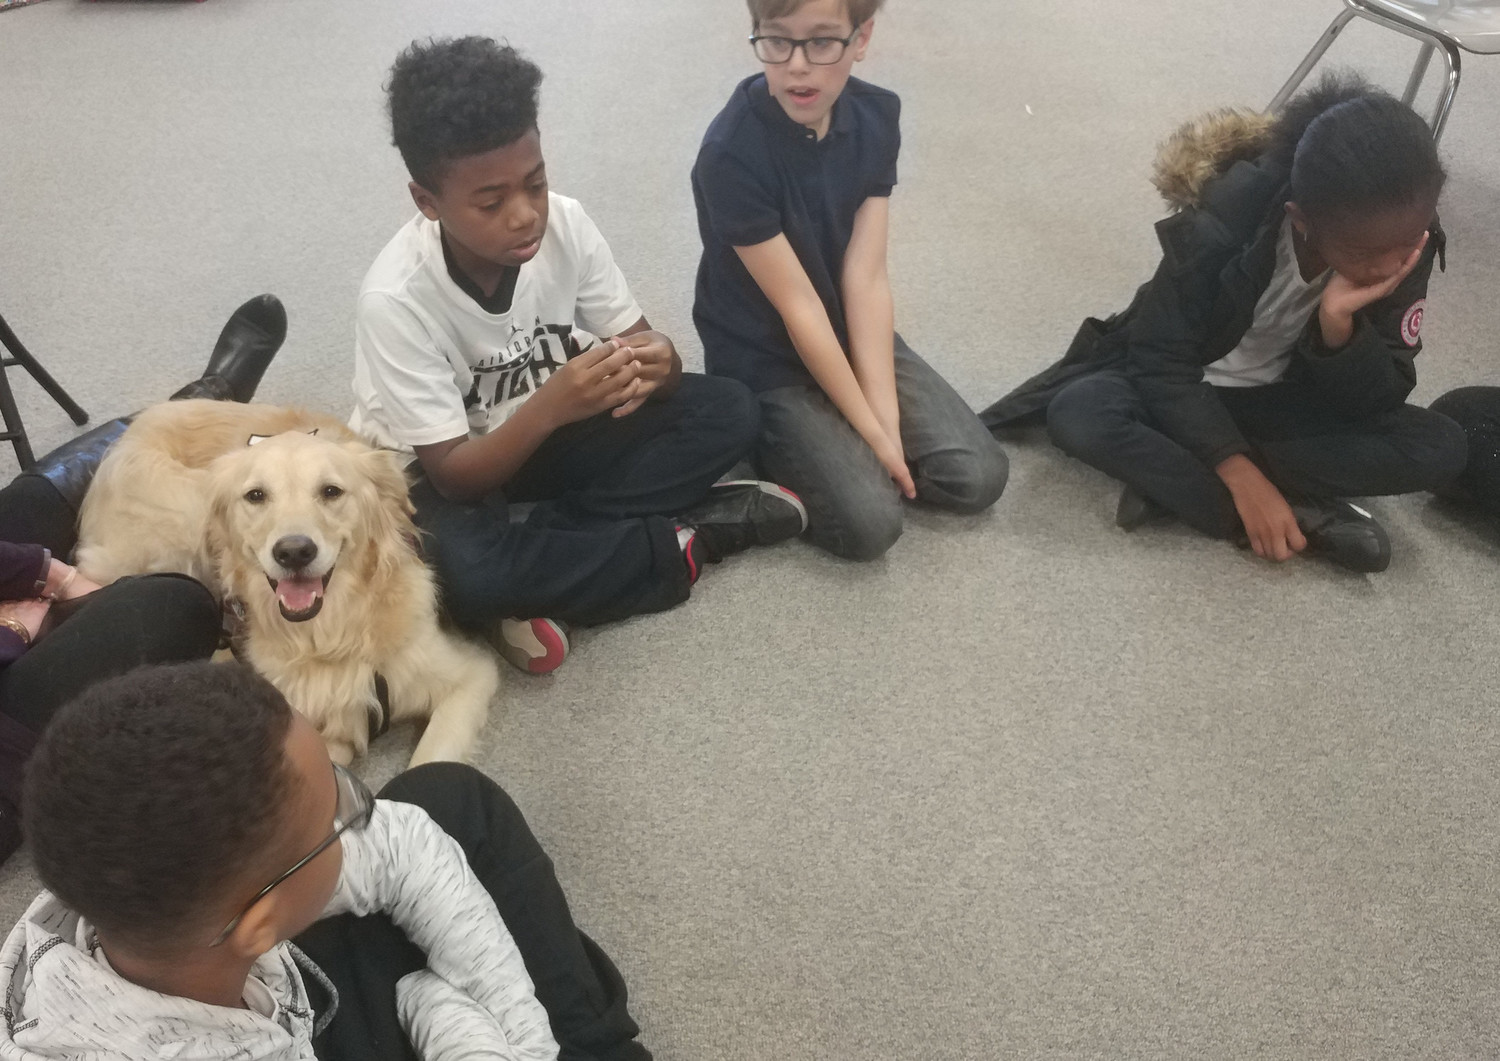 Nisier Franklin, Jamar Neal, Paul Reiseg, and Talaysia Roy listen to a story on Tuesday, Nov. 22 while enjoying the company of Mia, the Middletown Area School District's therapy dog.